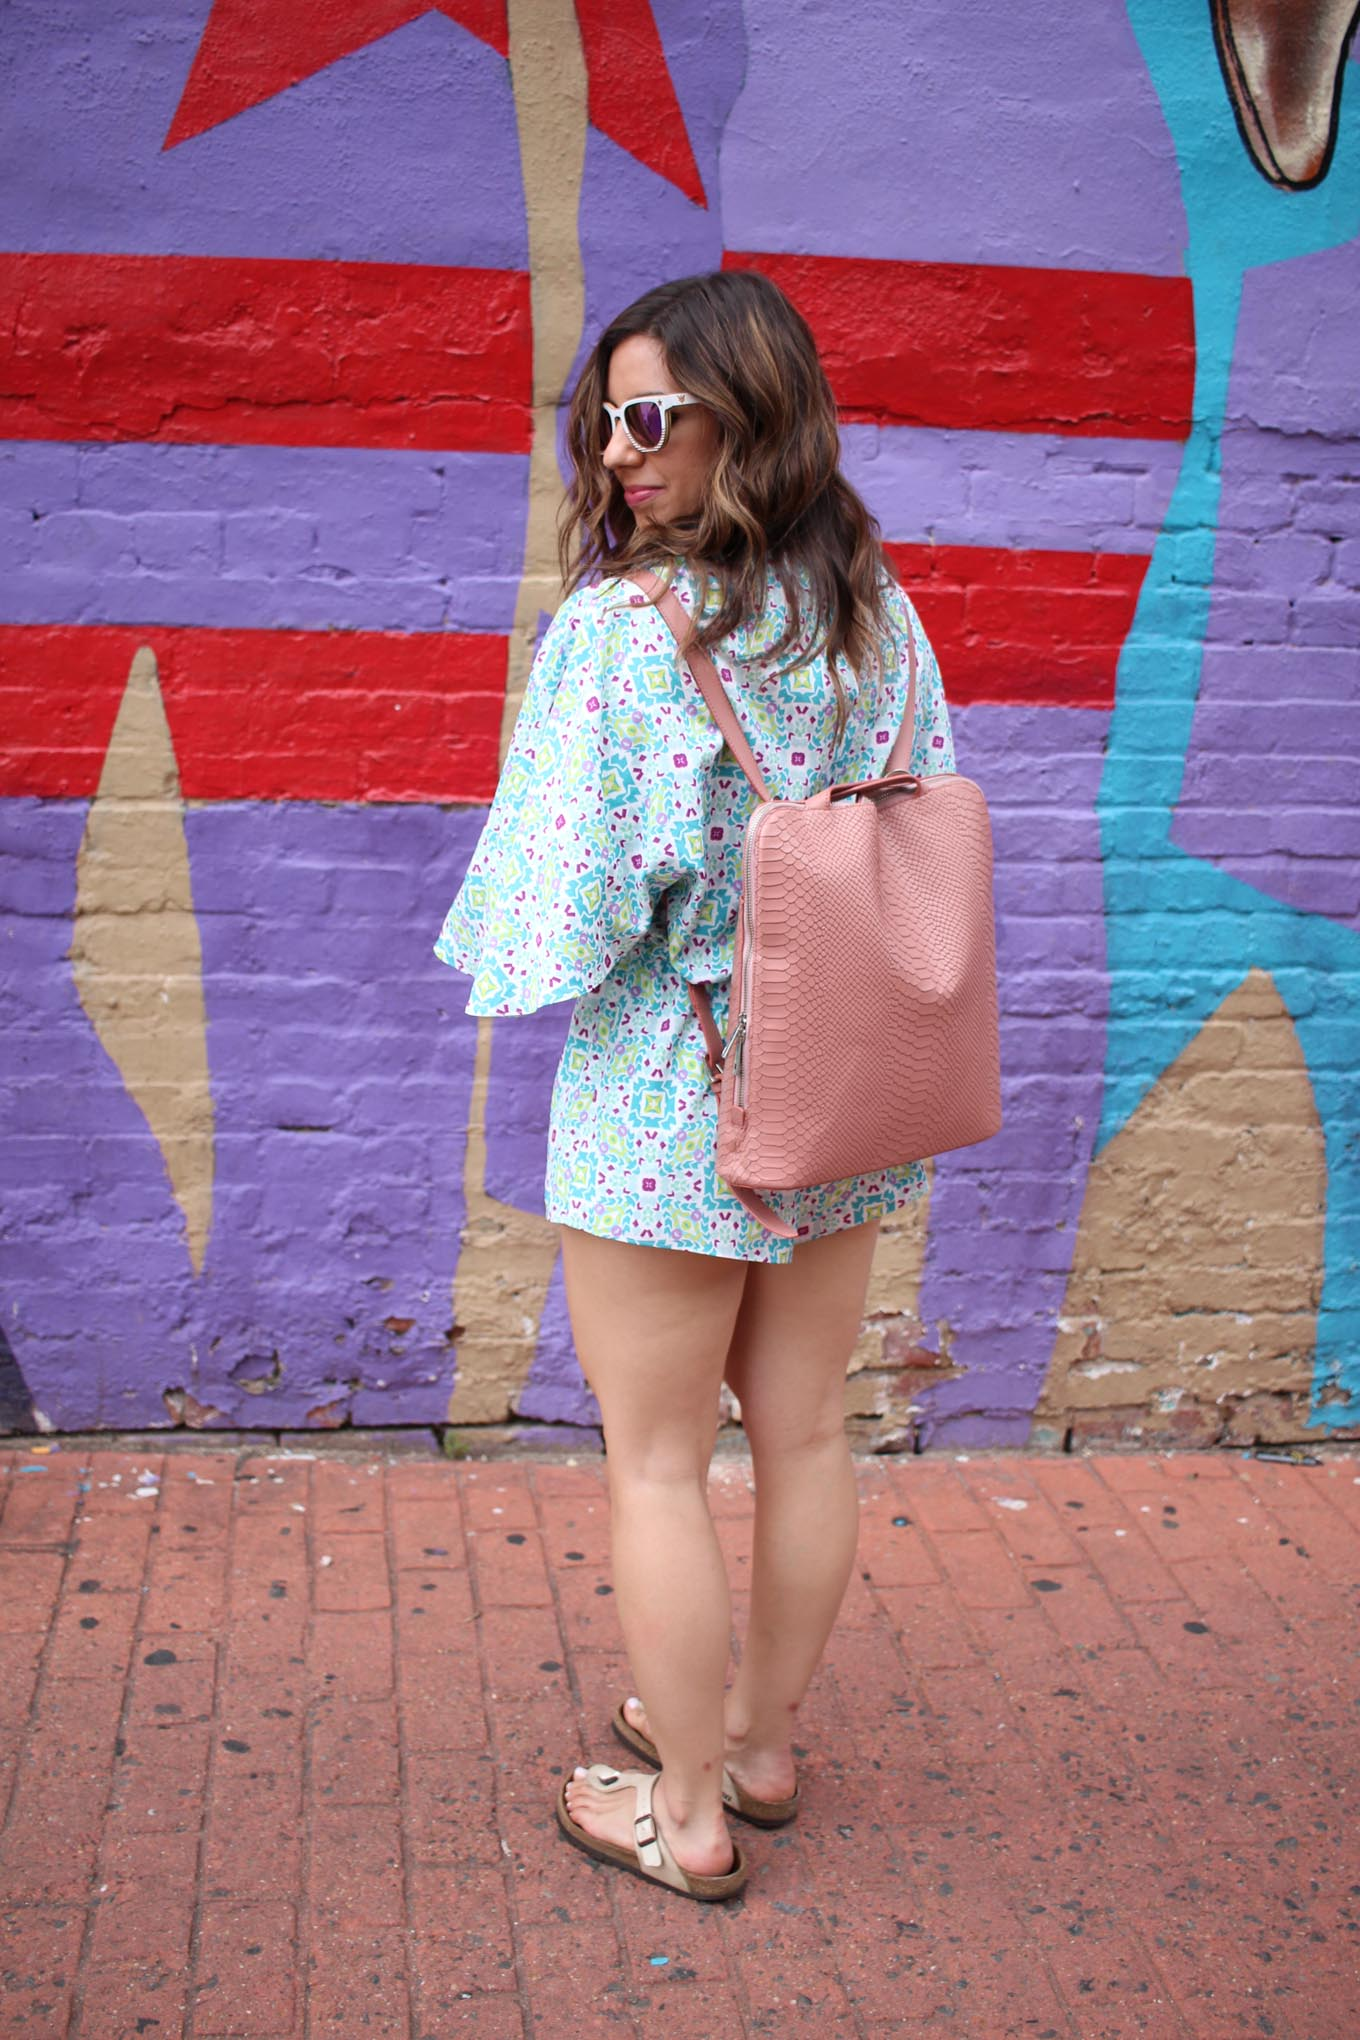 Lifestyle blogger Roxanne of Glass of Glam wearing a Cuddy Studios Romper, Winkwood Sunglasses, and a Mel Boteri bag